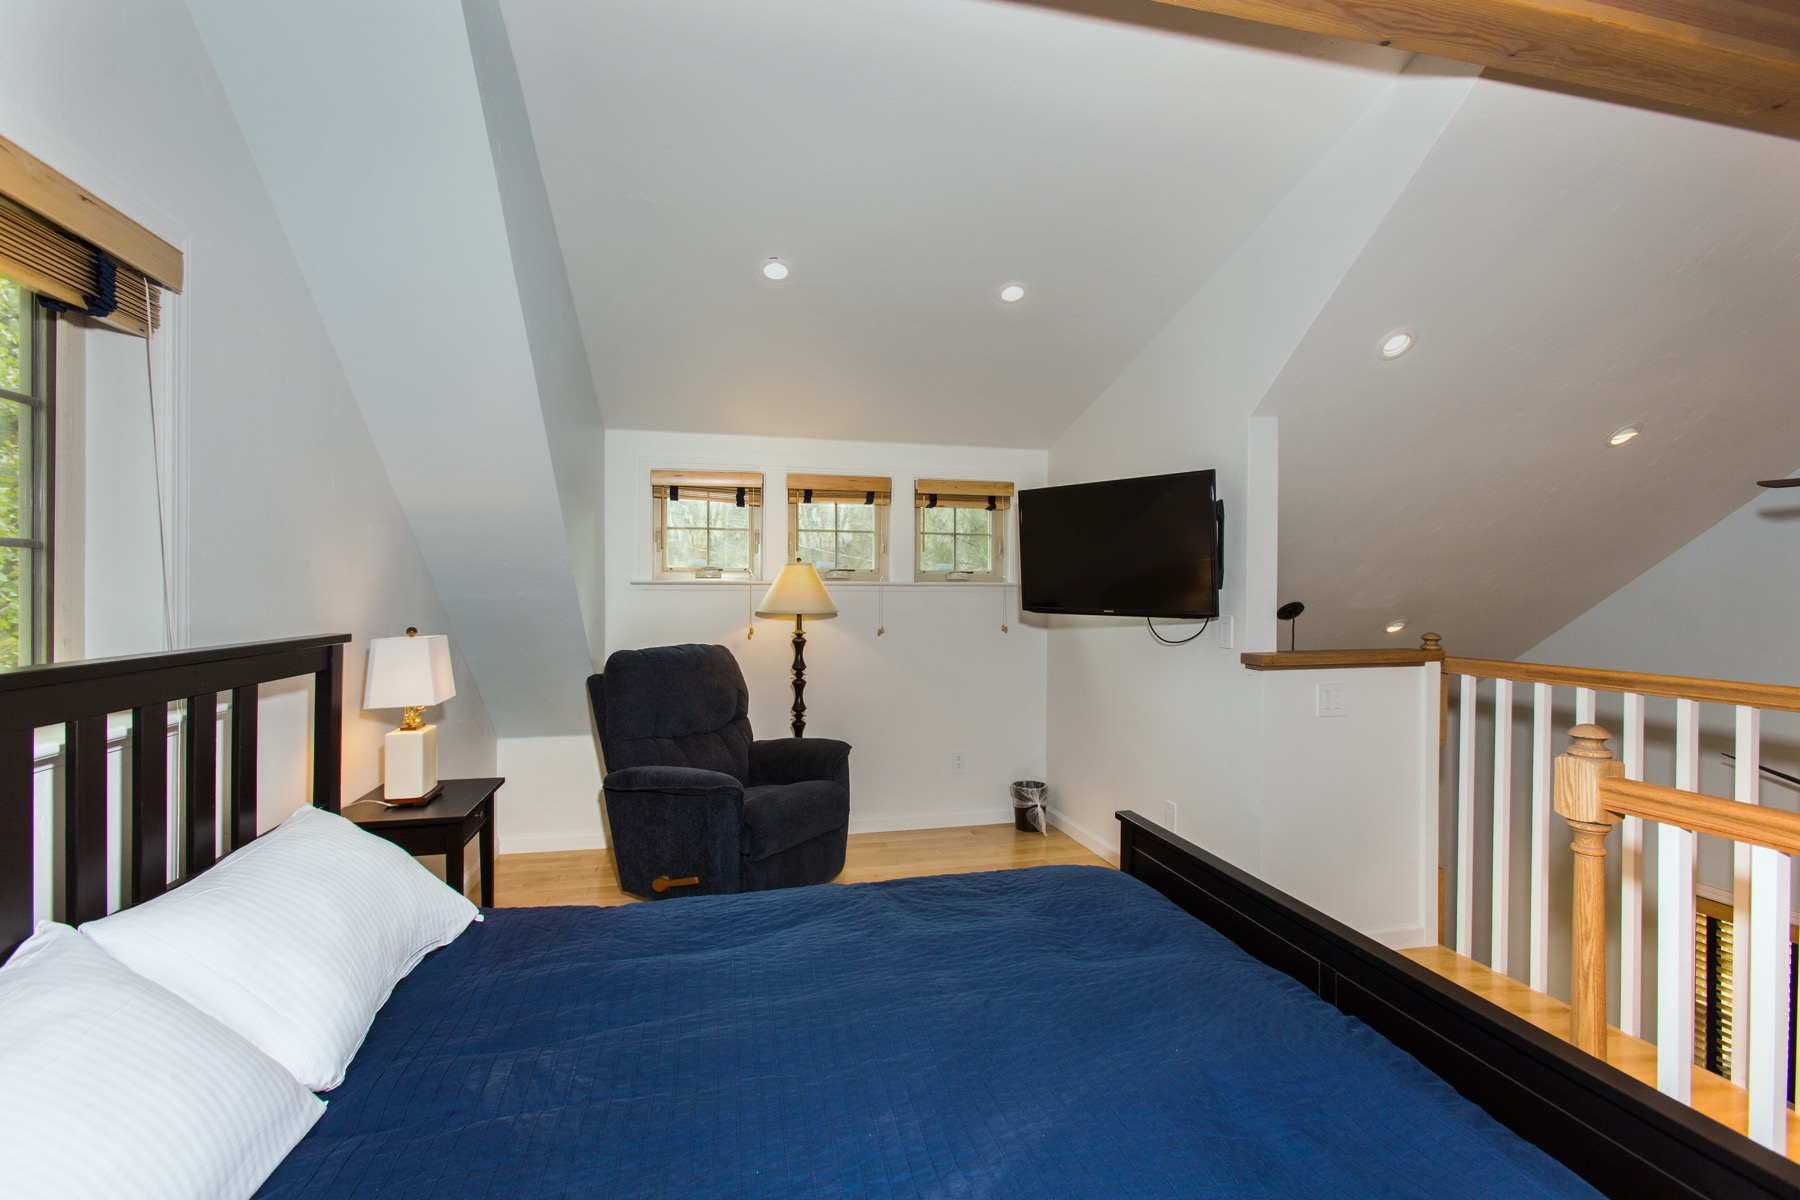 The upstairs sleeping loft with a queen bed and flatscreen tv